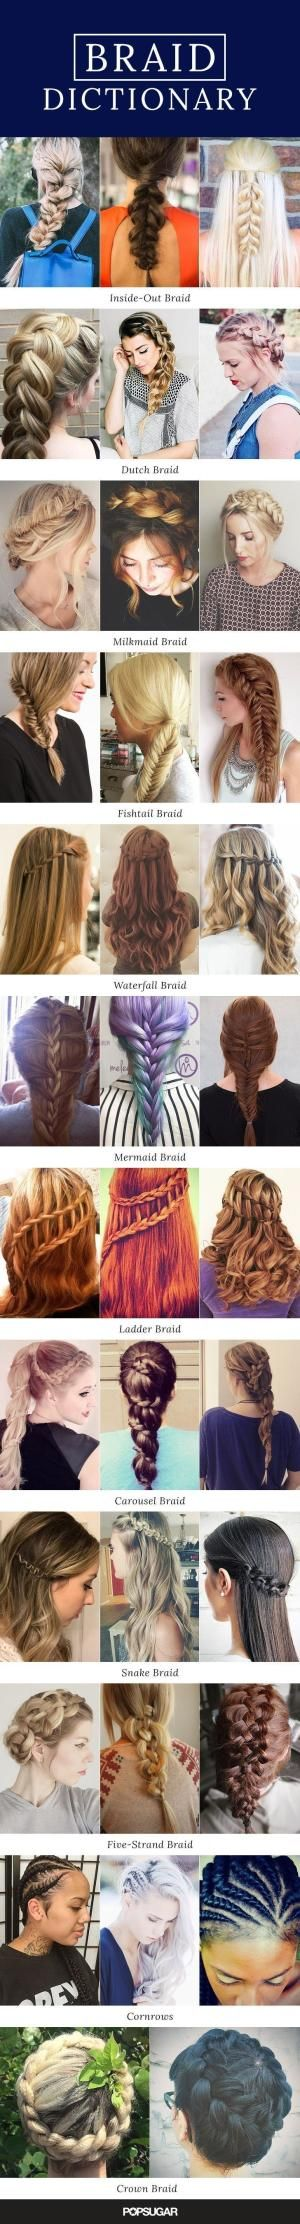 There are so many different braids out there — how many can you create? Everyone wants to master the new trendy style before a new one is invented. So, we've broken down every kind of plait (with gorgeous real-girl pictures and tutorials) for hairstyle inspiration. See photos of inside-out braids, dutch braids, milkmaid braids, fishtail braids, waterfall braids, mermaid braids, ladder braids, carousel braids, snake braids, five-strand braids, cornrows, and crown braids. by mai